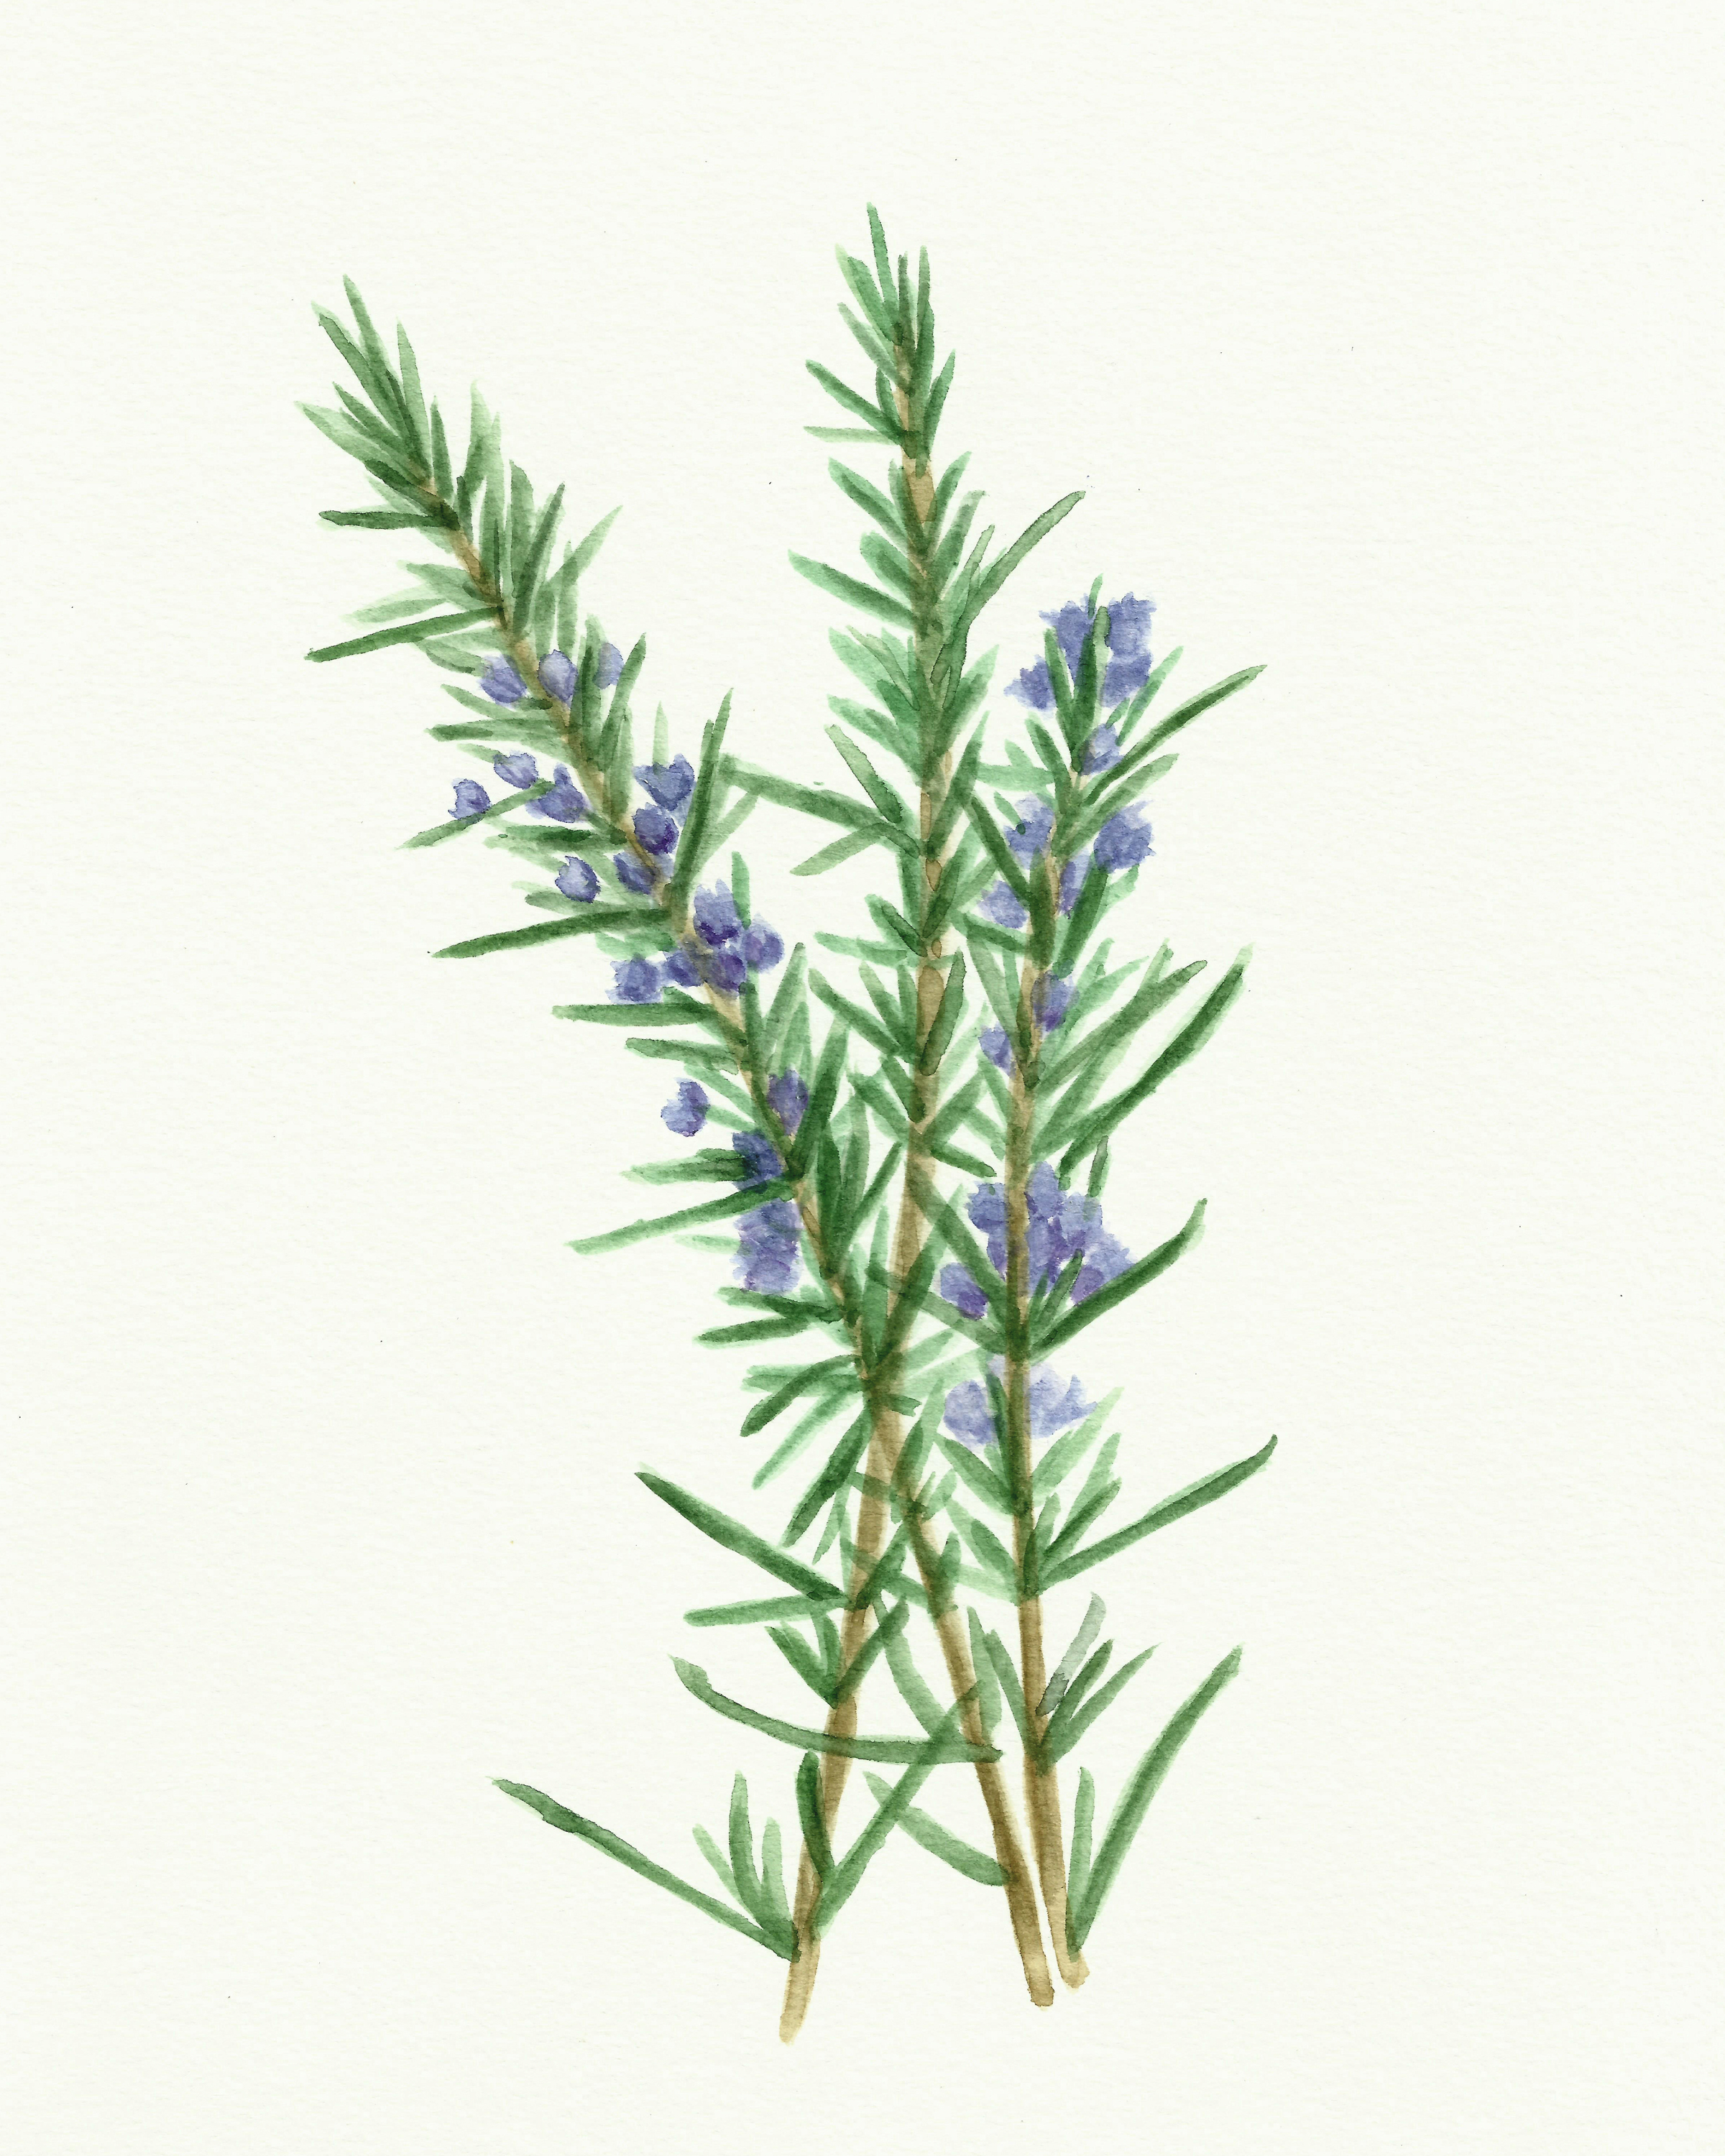 photo regarding Watercolor Printable named Absolutely free Herb Watercolor Printables: Rosemary and Oregano! - The